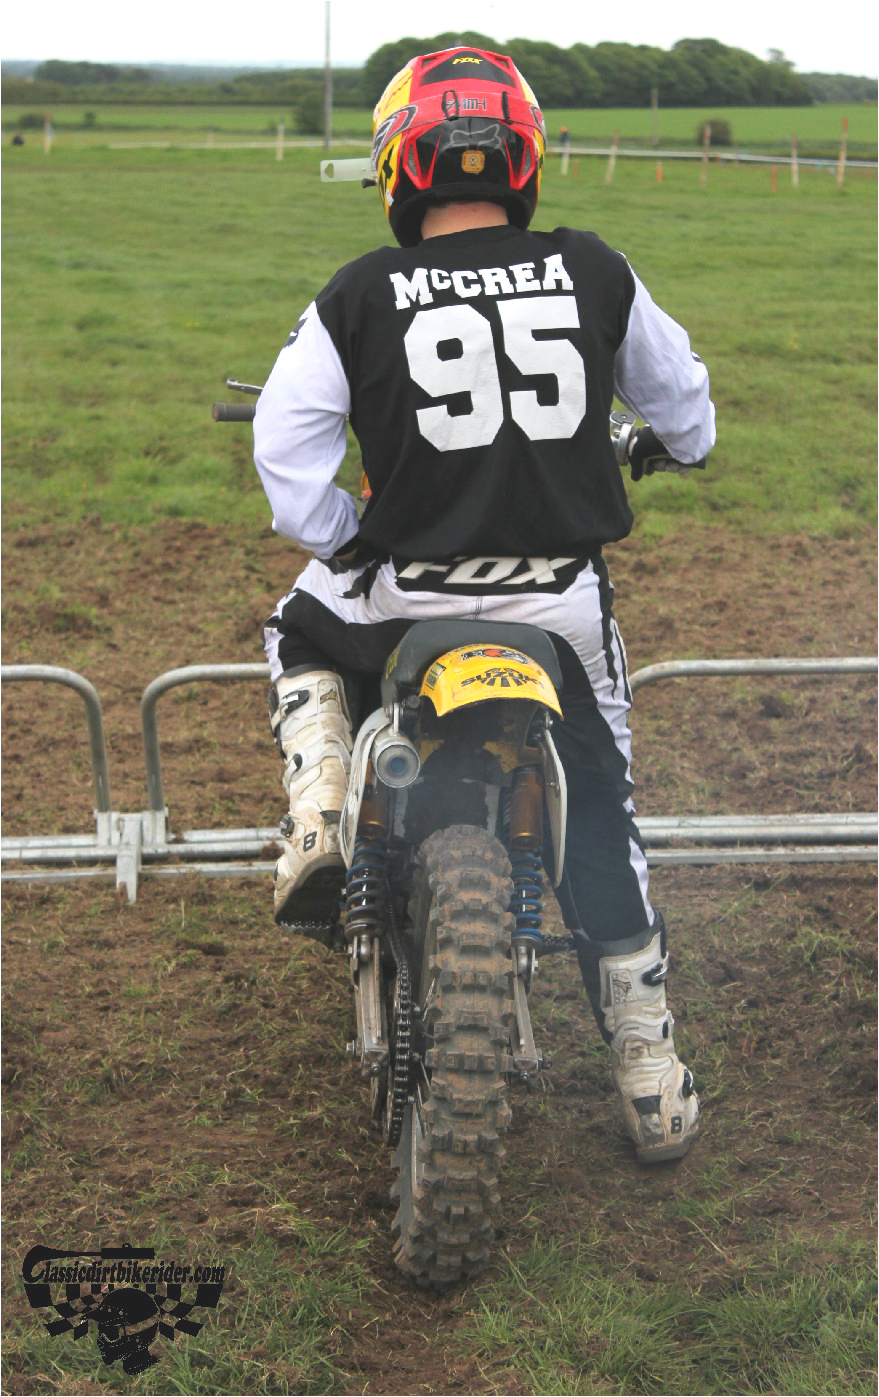 classicdirtbikerider.com-national-twinshock-championship-2015-Garstang-at the start gate ready to race 1